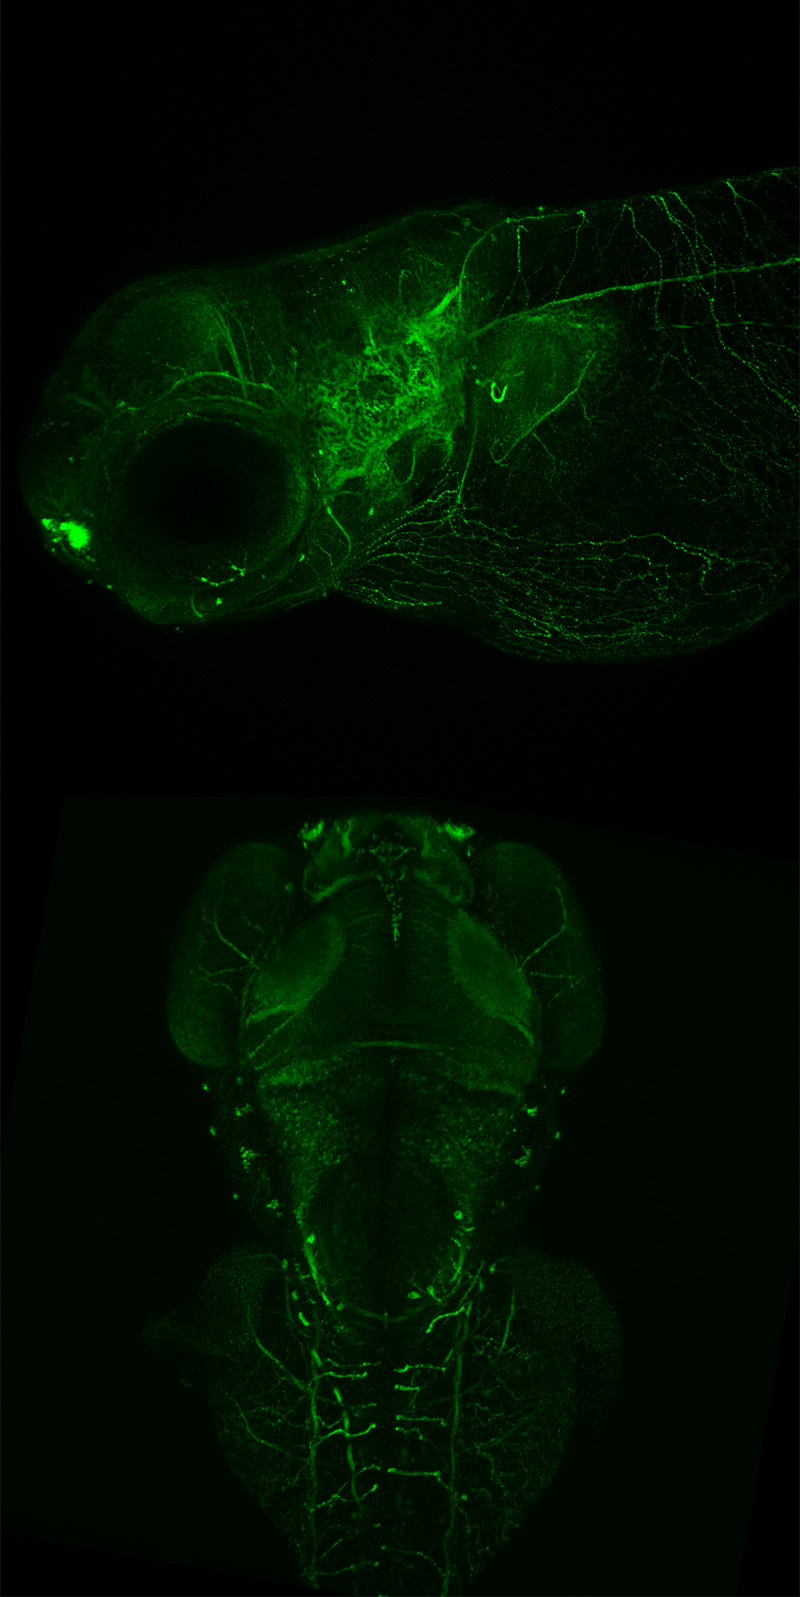 Dorsal and lateral maximum intensity projections of zebrafish embryos, 48 h post fertilization, showing developing neurons. (Courtesy of Aminah Giousoh and Dr. Robert Bryson-Richardson, School of Biological Sciences, Monash University, Victoria, Australia.)